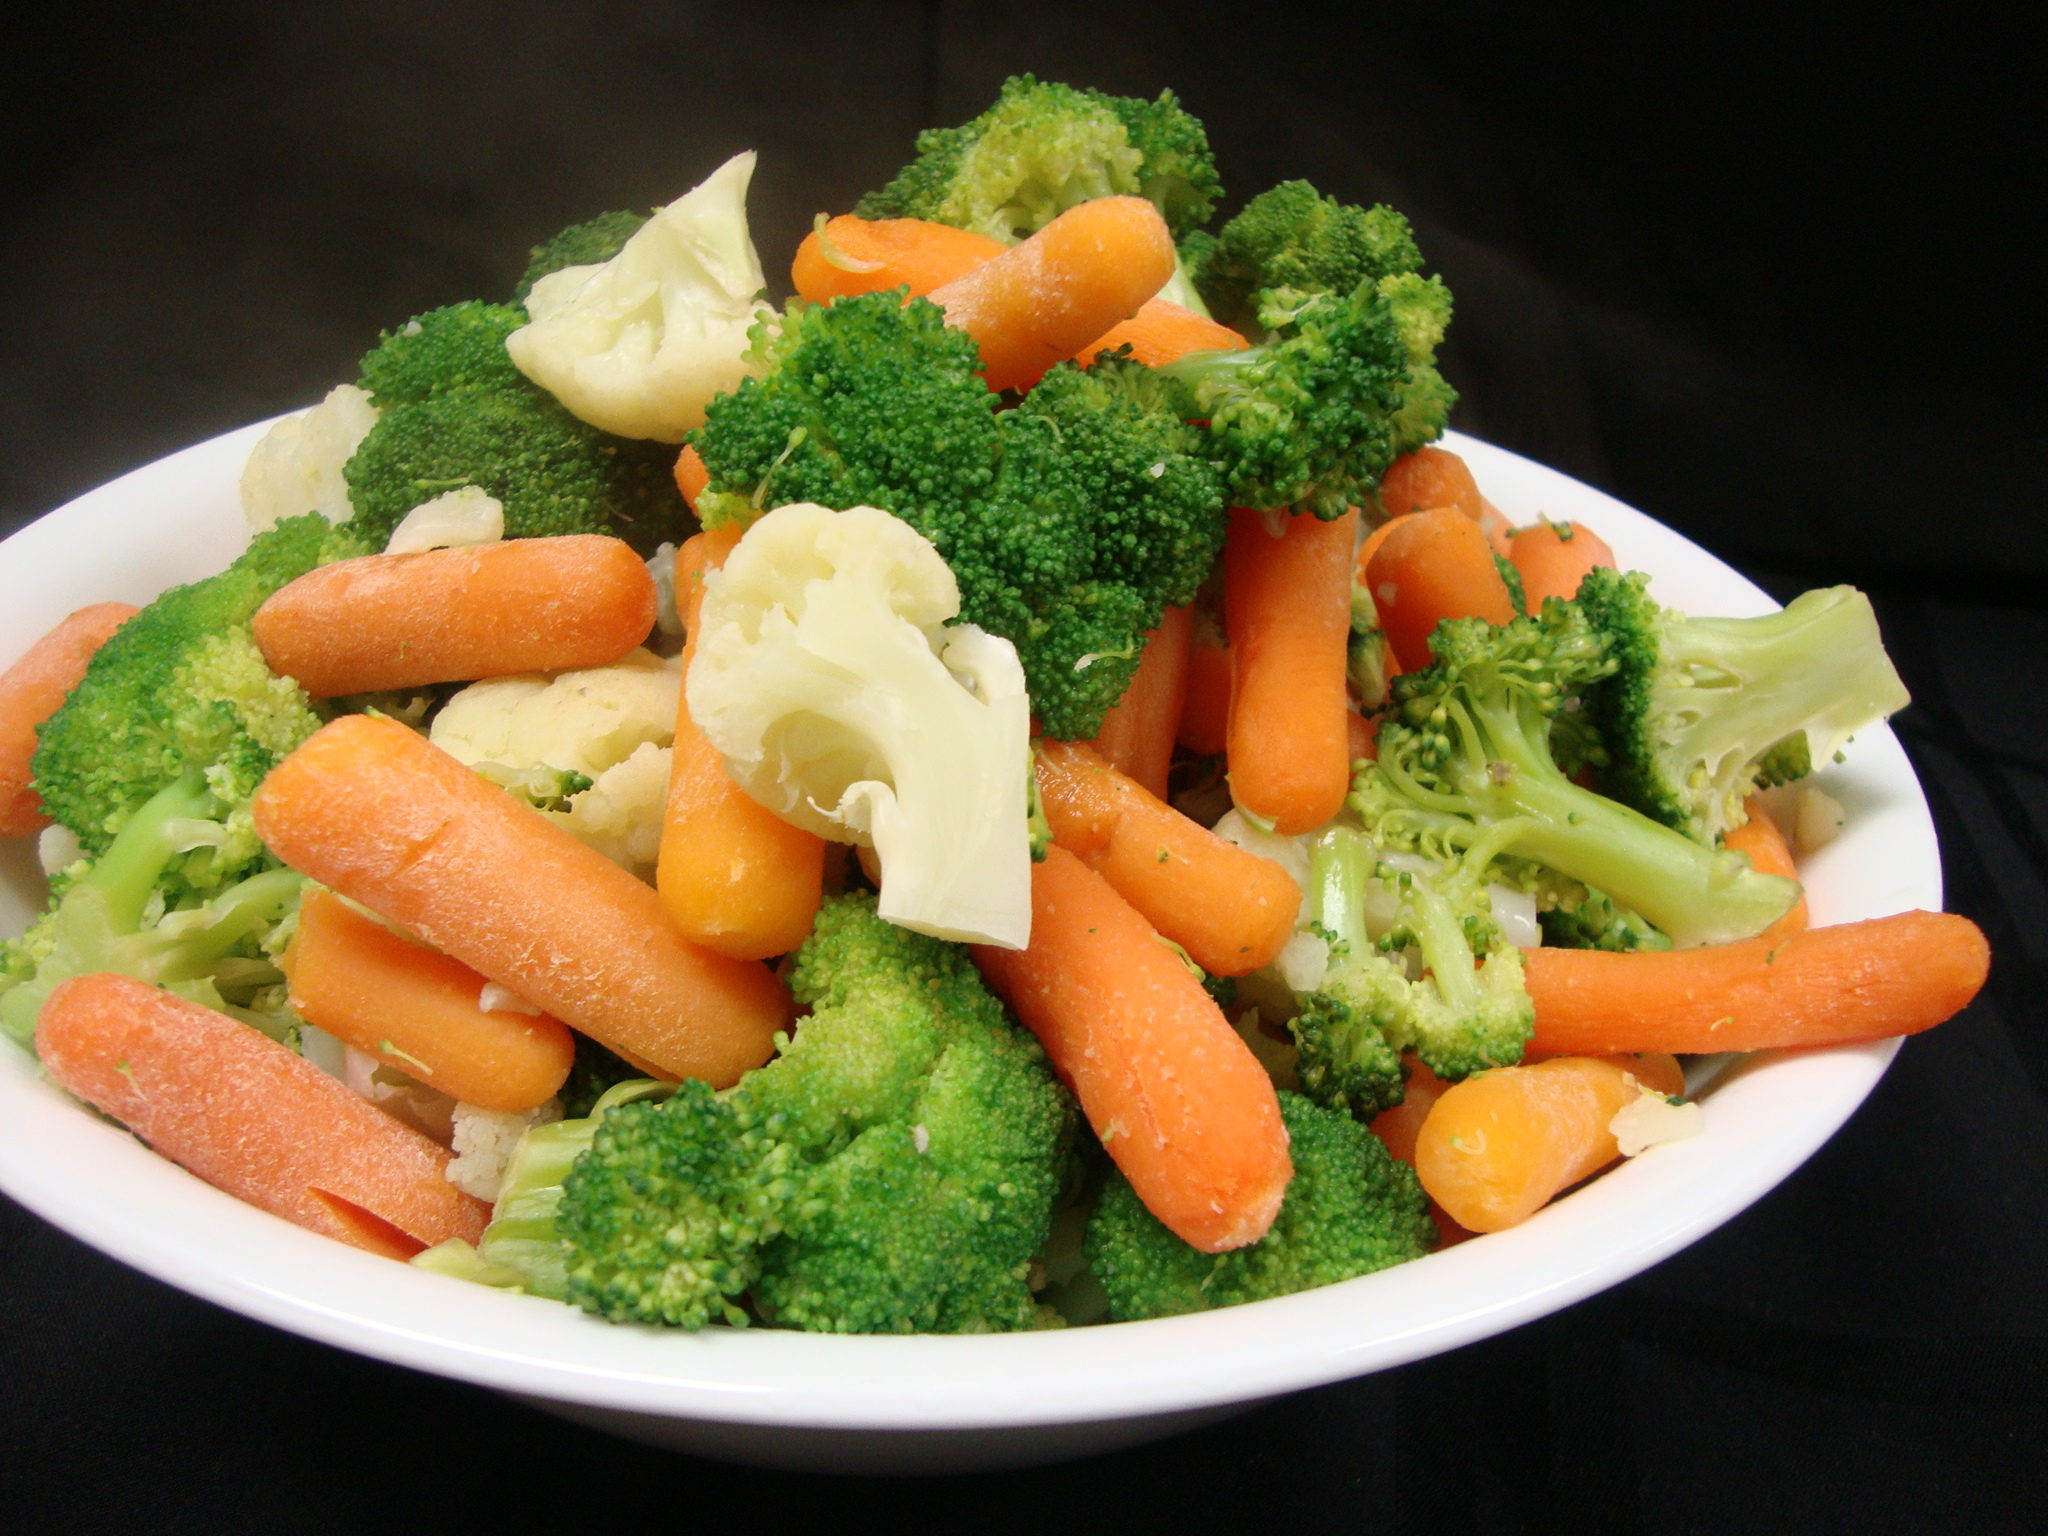 I didn't expect vegetables to be such vegetables.